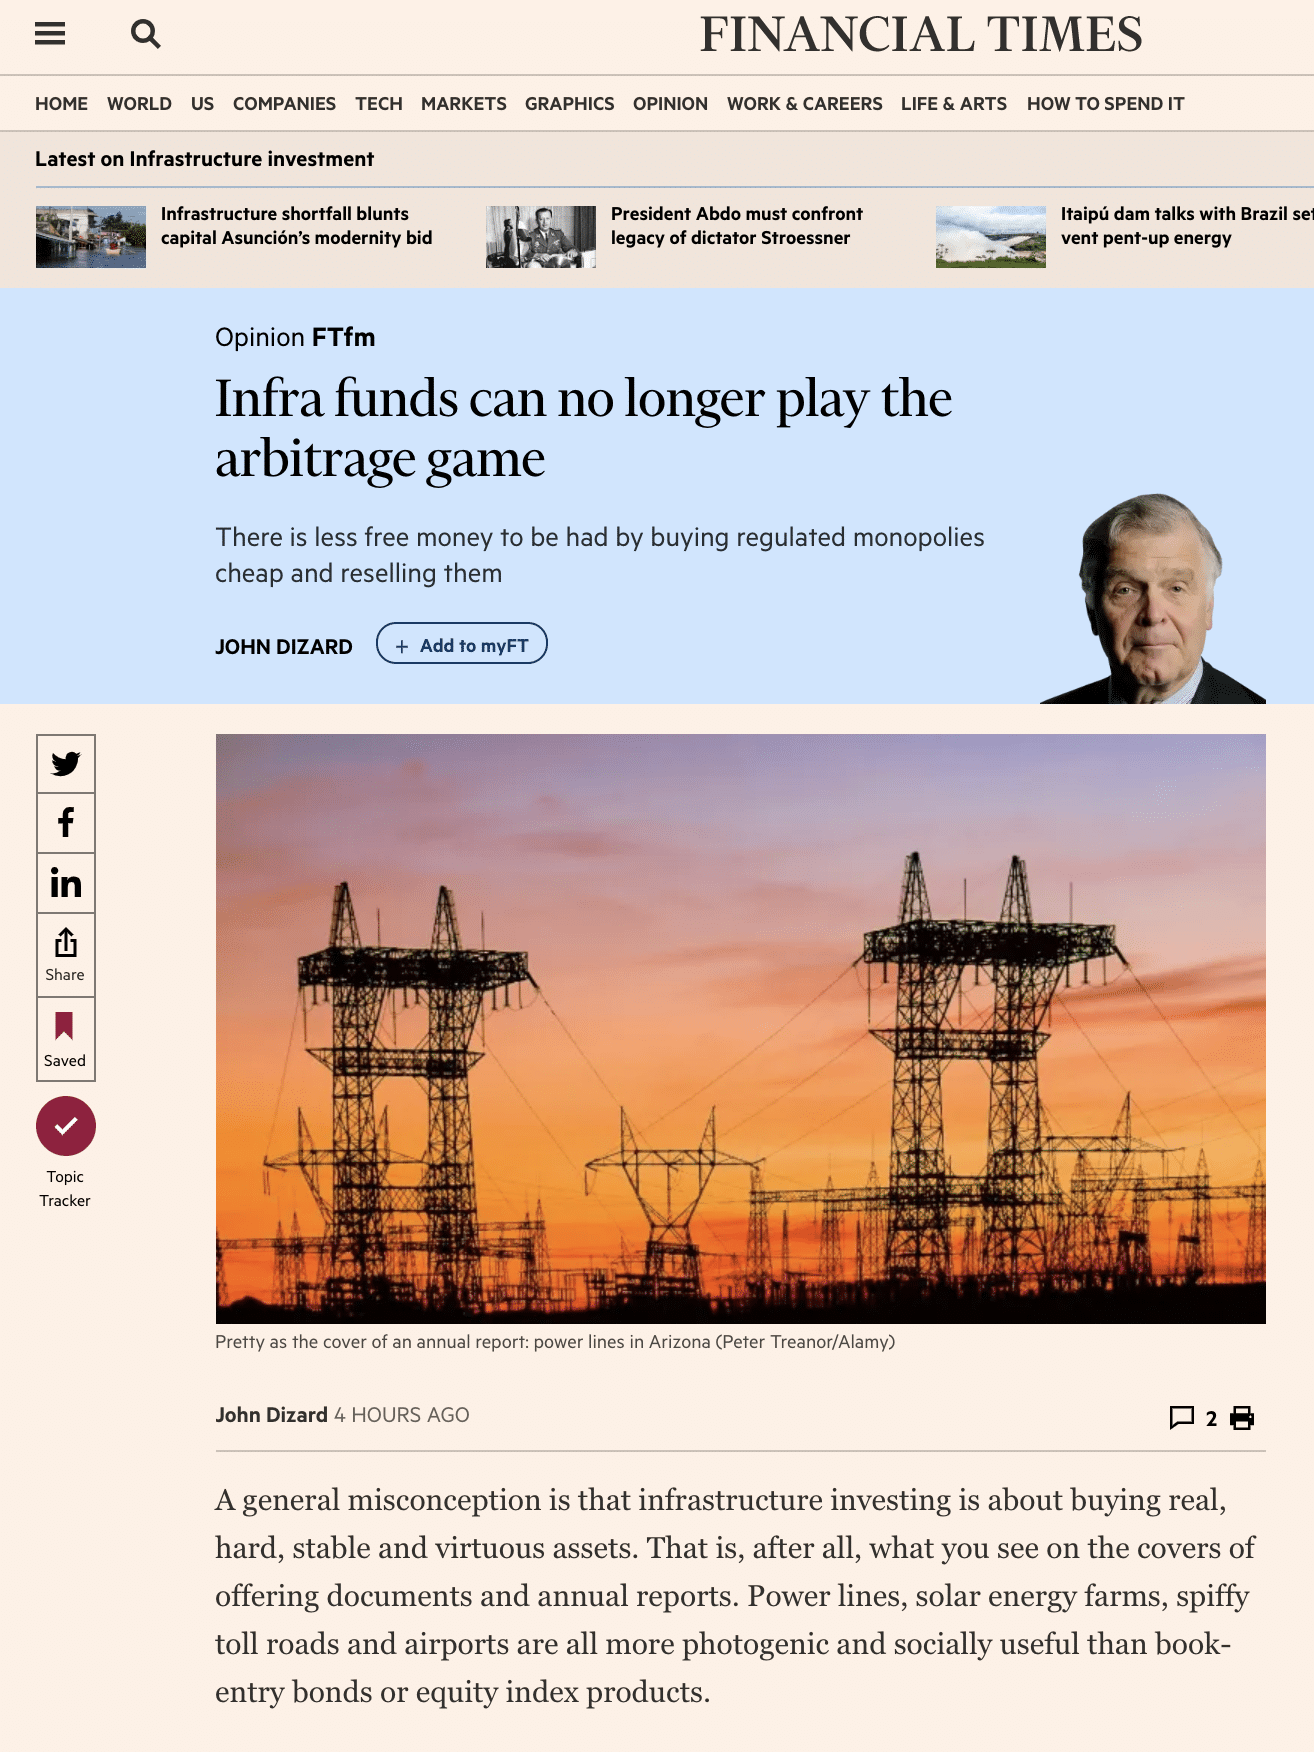 FTfm: Infra funds can no longer play the arbitrage game